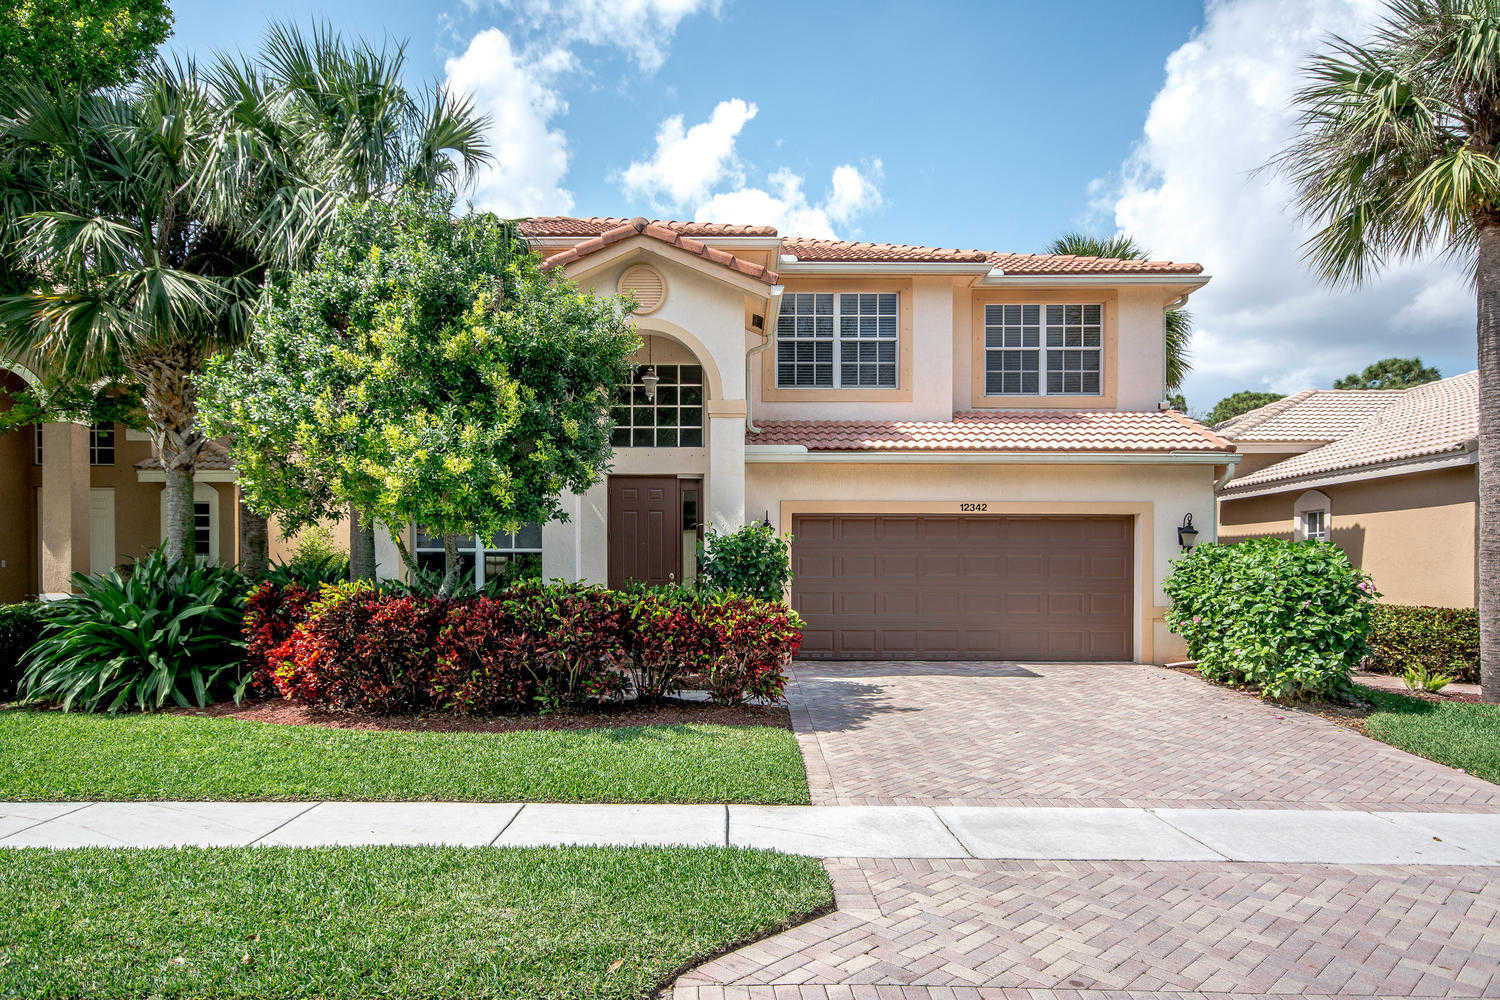 12342 Colony Preserve Drive, Boynton Beach, FL 33436 now has a new price of $425,000!